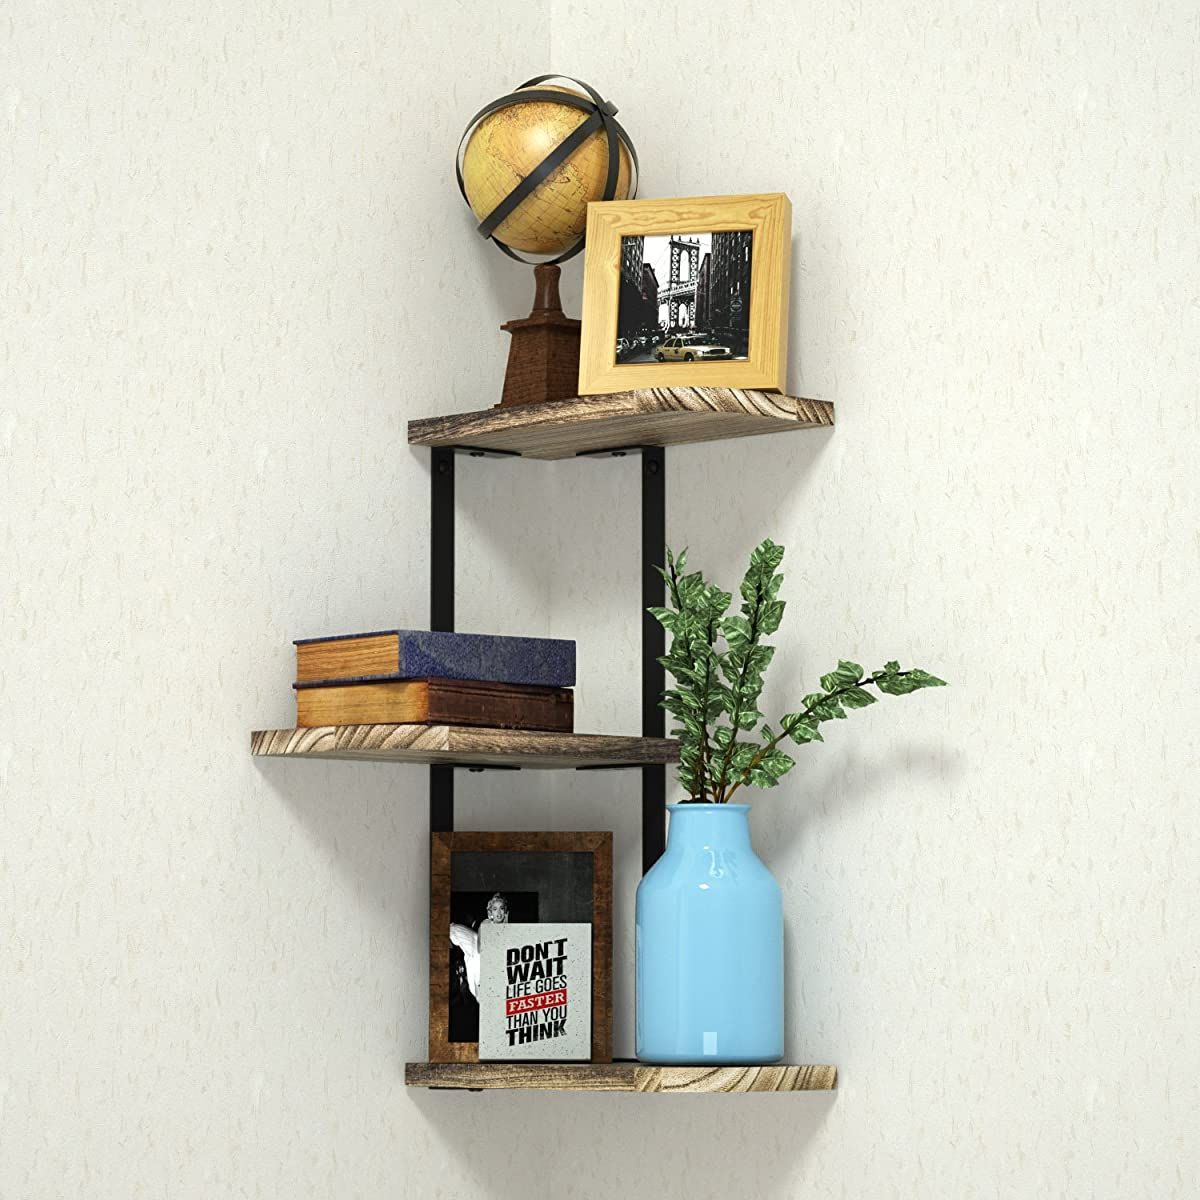 Corner Shelf Wall Mount of 3 Tier by Love-KANKEI, Rustic Wood Floating Shelves for Bedroom, Living Room, Bathroom, Kitchen, Office and More